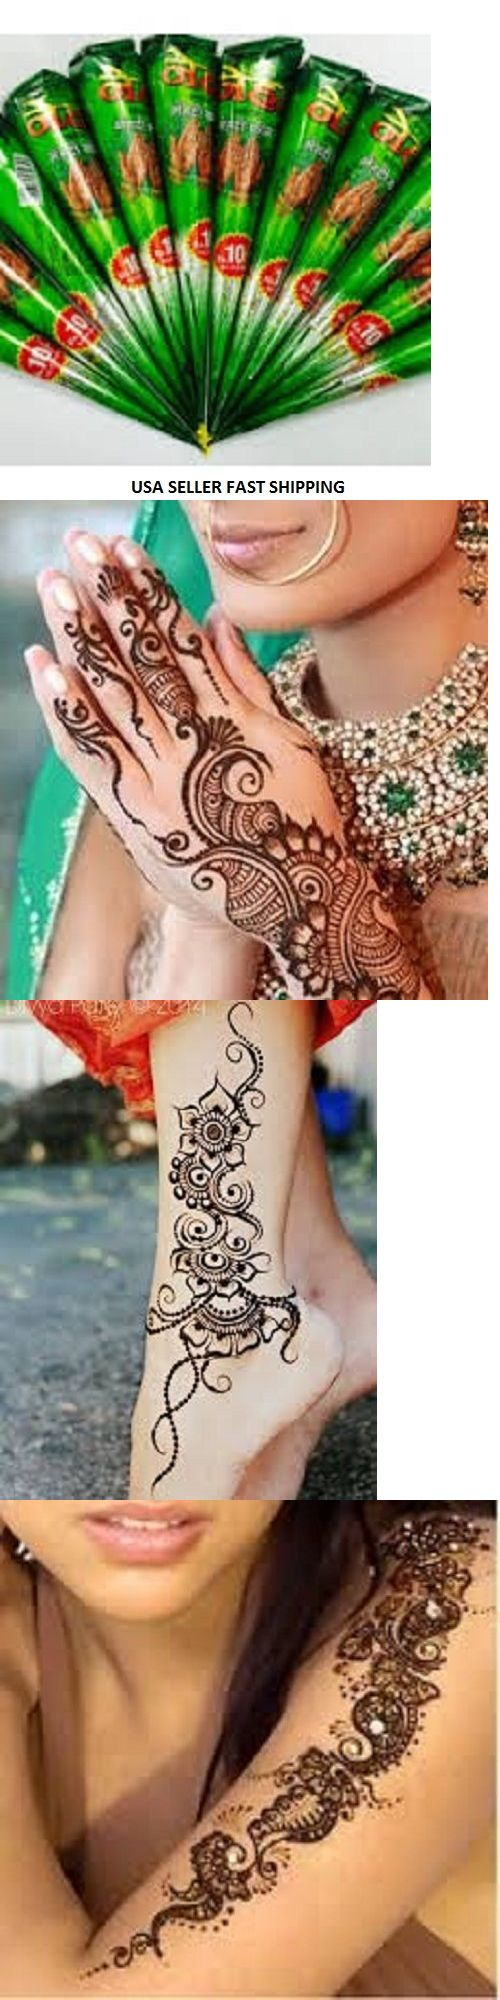 1000 ideas about brown tattoo ink on pinterest tattoo ink colors green tattoos and grey tattoo. Black Bedroom Furniture Sets. Home Design Ideas